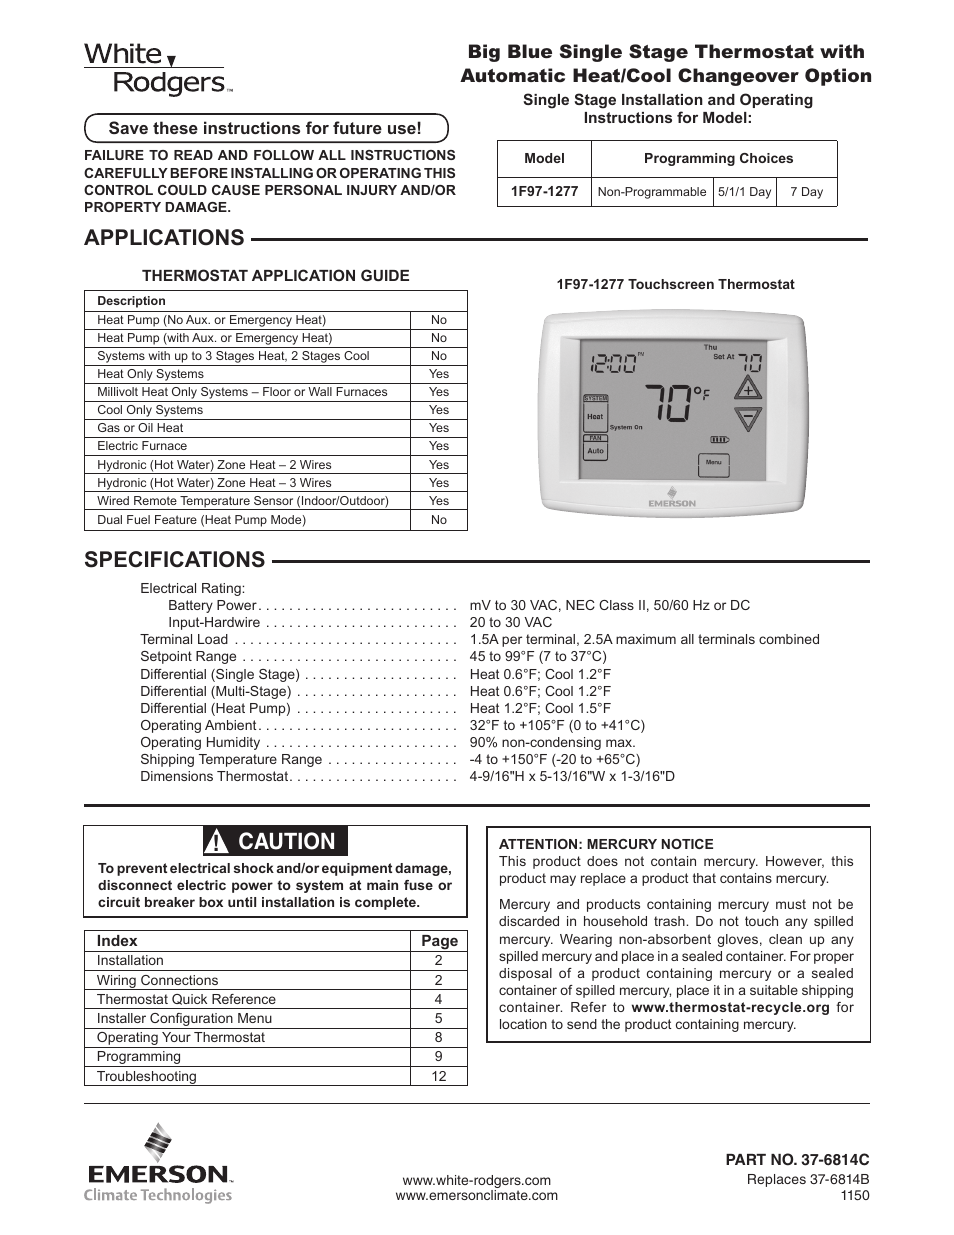 Rv Thermostat The Big Thermostat Info Page Manual Guide